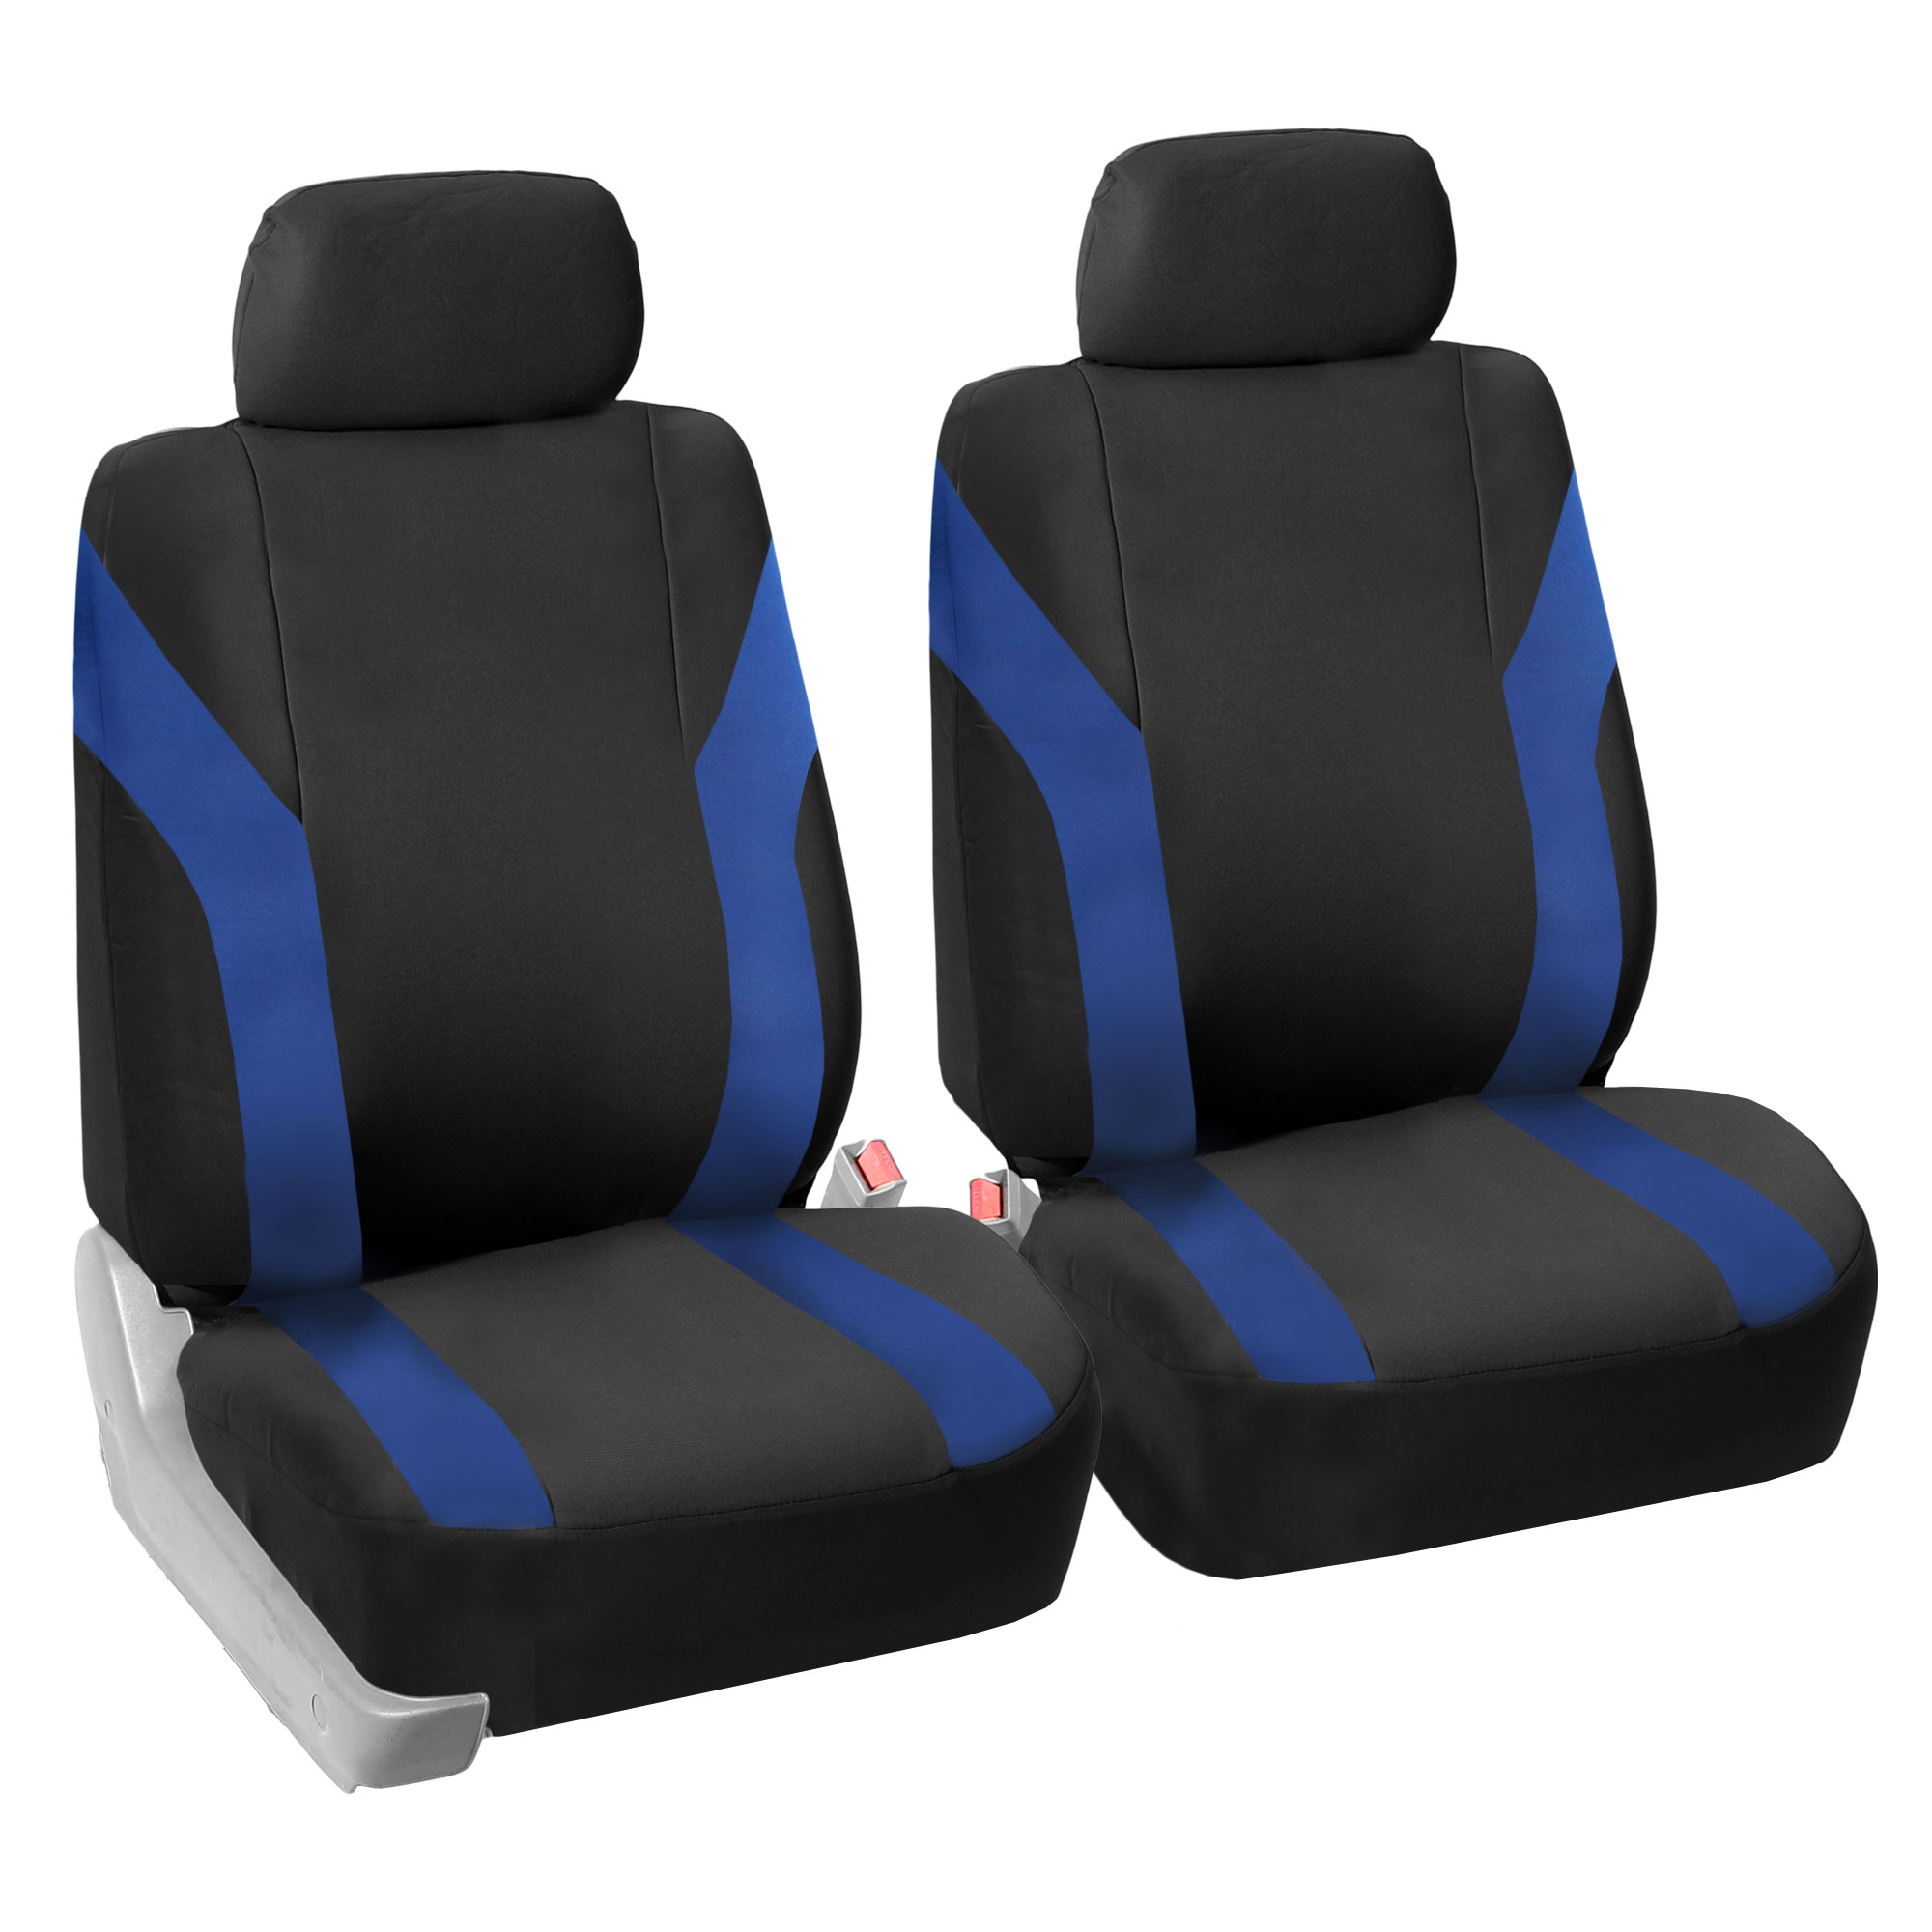 Auto Seat Covers For Car Sedan SUV Van 5 Colors Specical